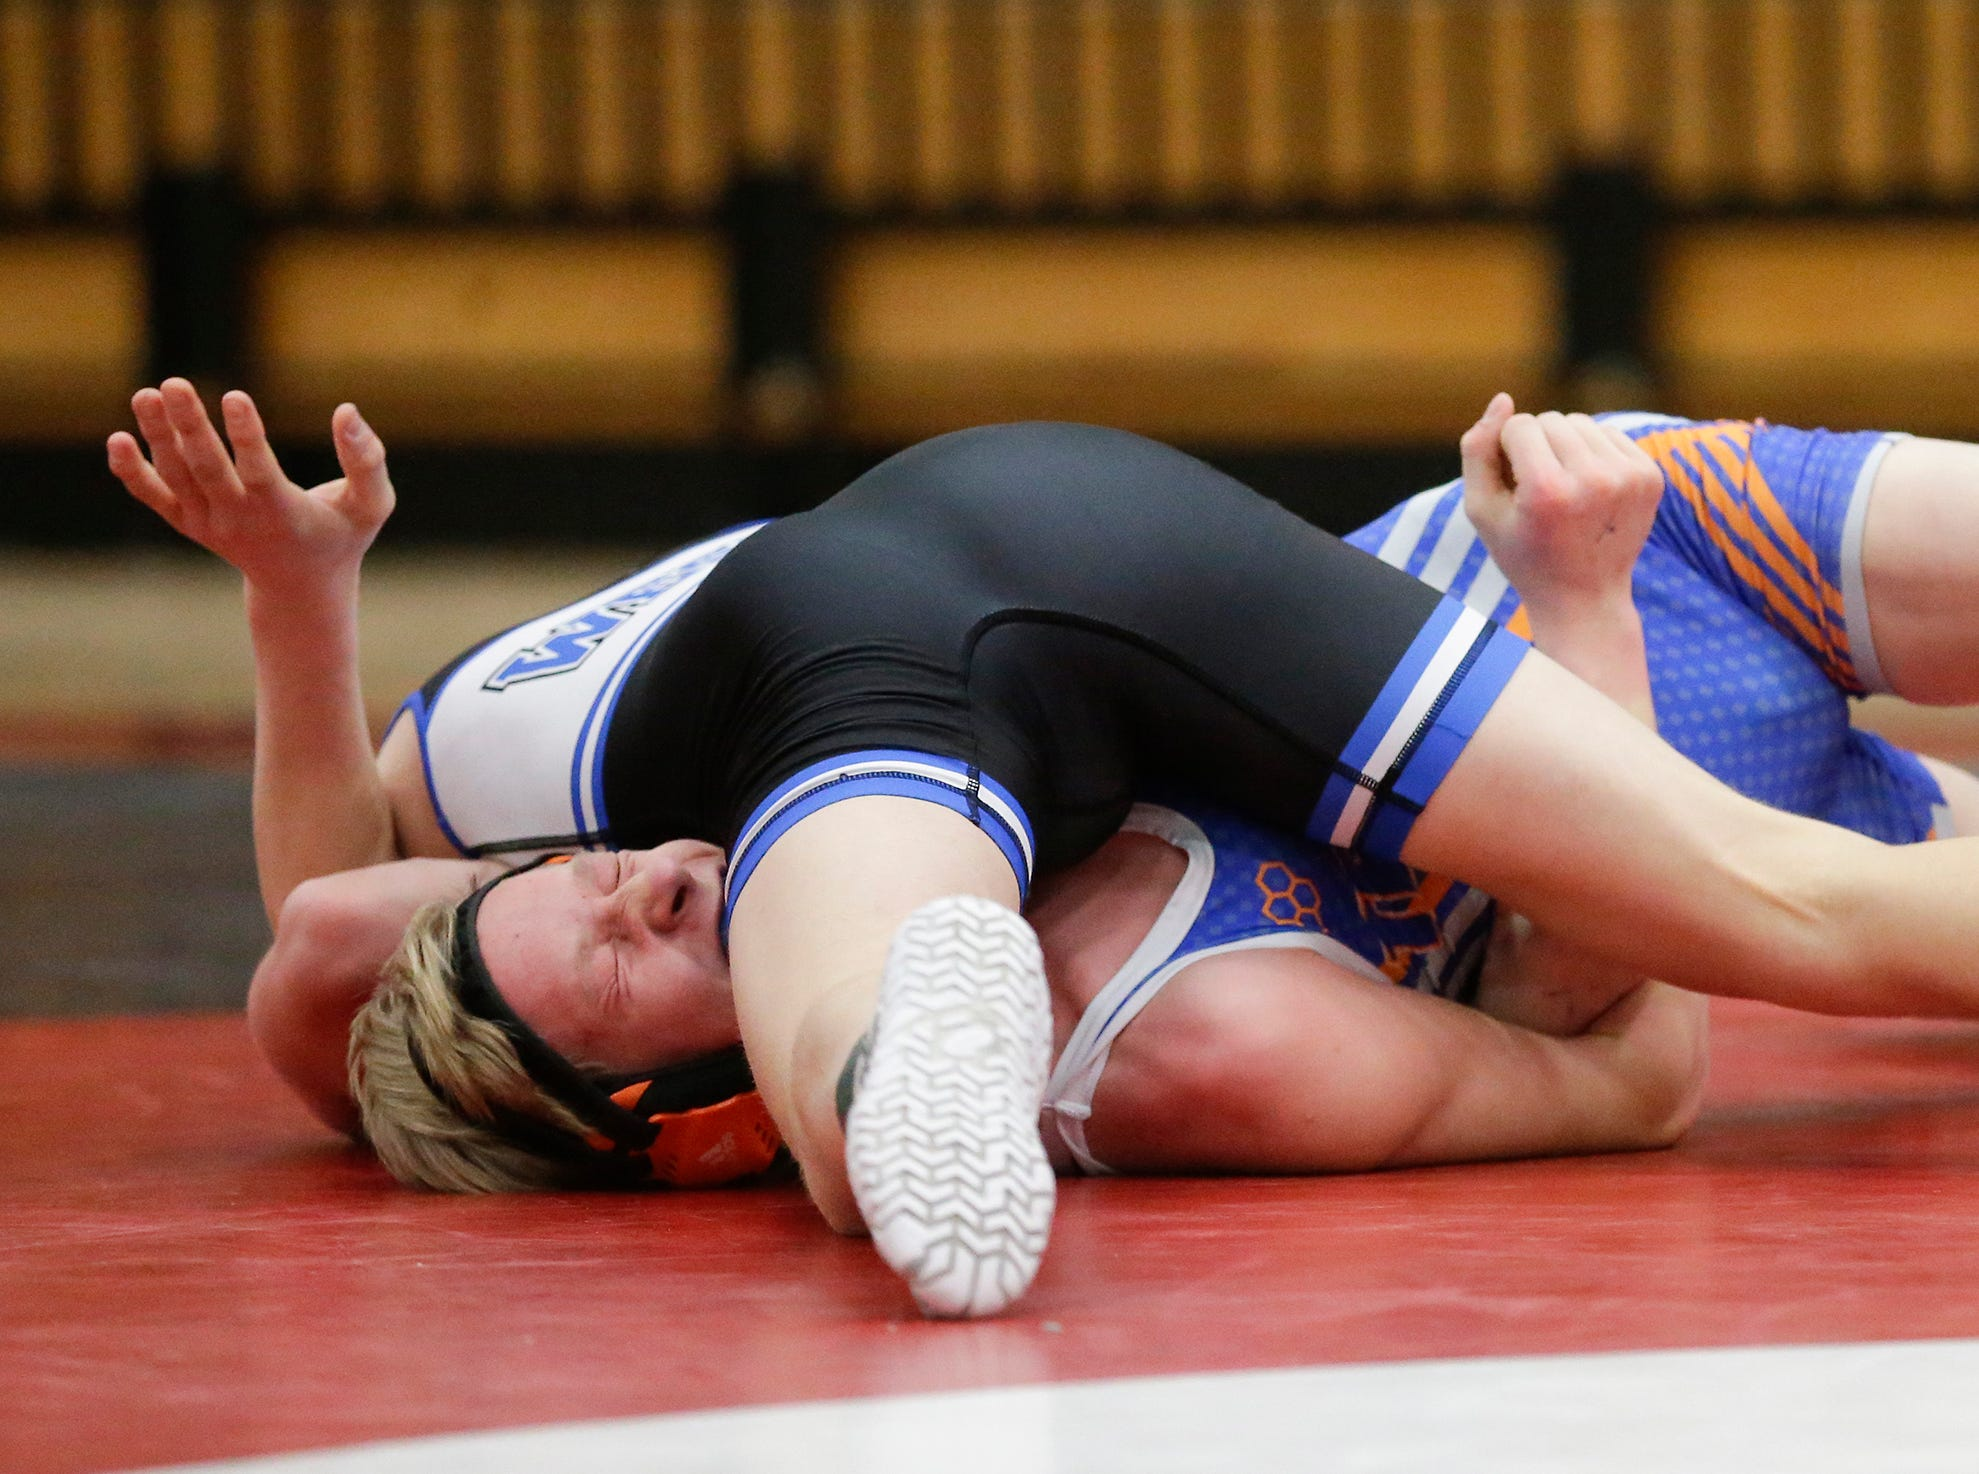 Oshkosh West High School's Jack Zangl wrestles Appleton West High School's Chase Wendt in a 120 pound match during the Fox Valley Association wrestling championship meet held in Fond du Lac, Saturday, February 2, 2019. Zangl won the match by a pin. Doug Raflik/USA TODAY NETWORK-Wisconsin